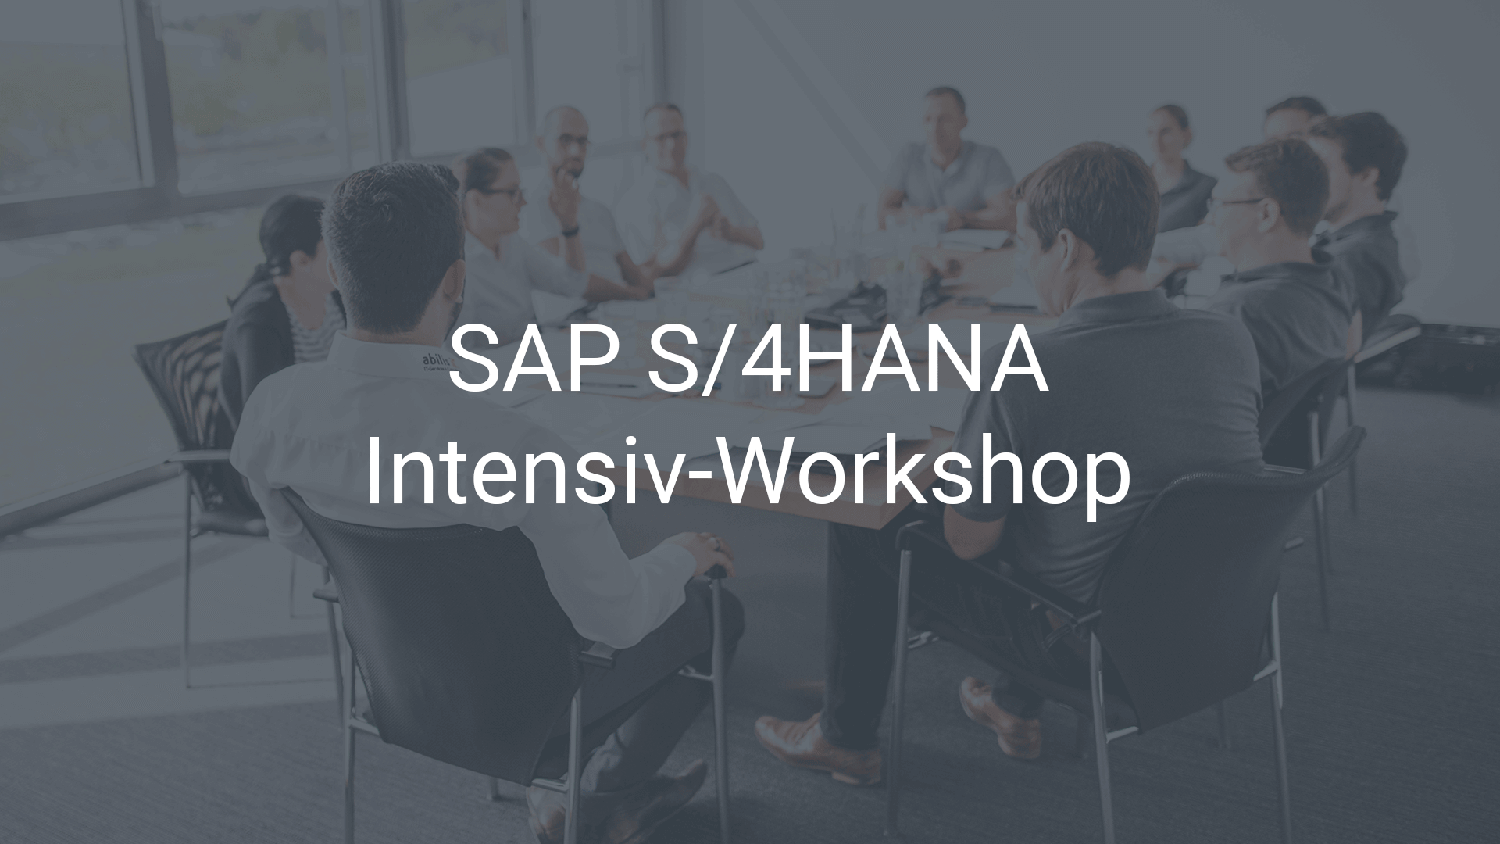 SAP S/4HANA Intensiv-Workshop